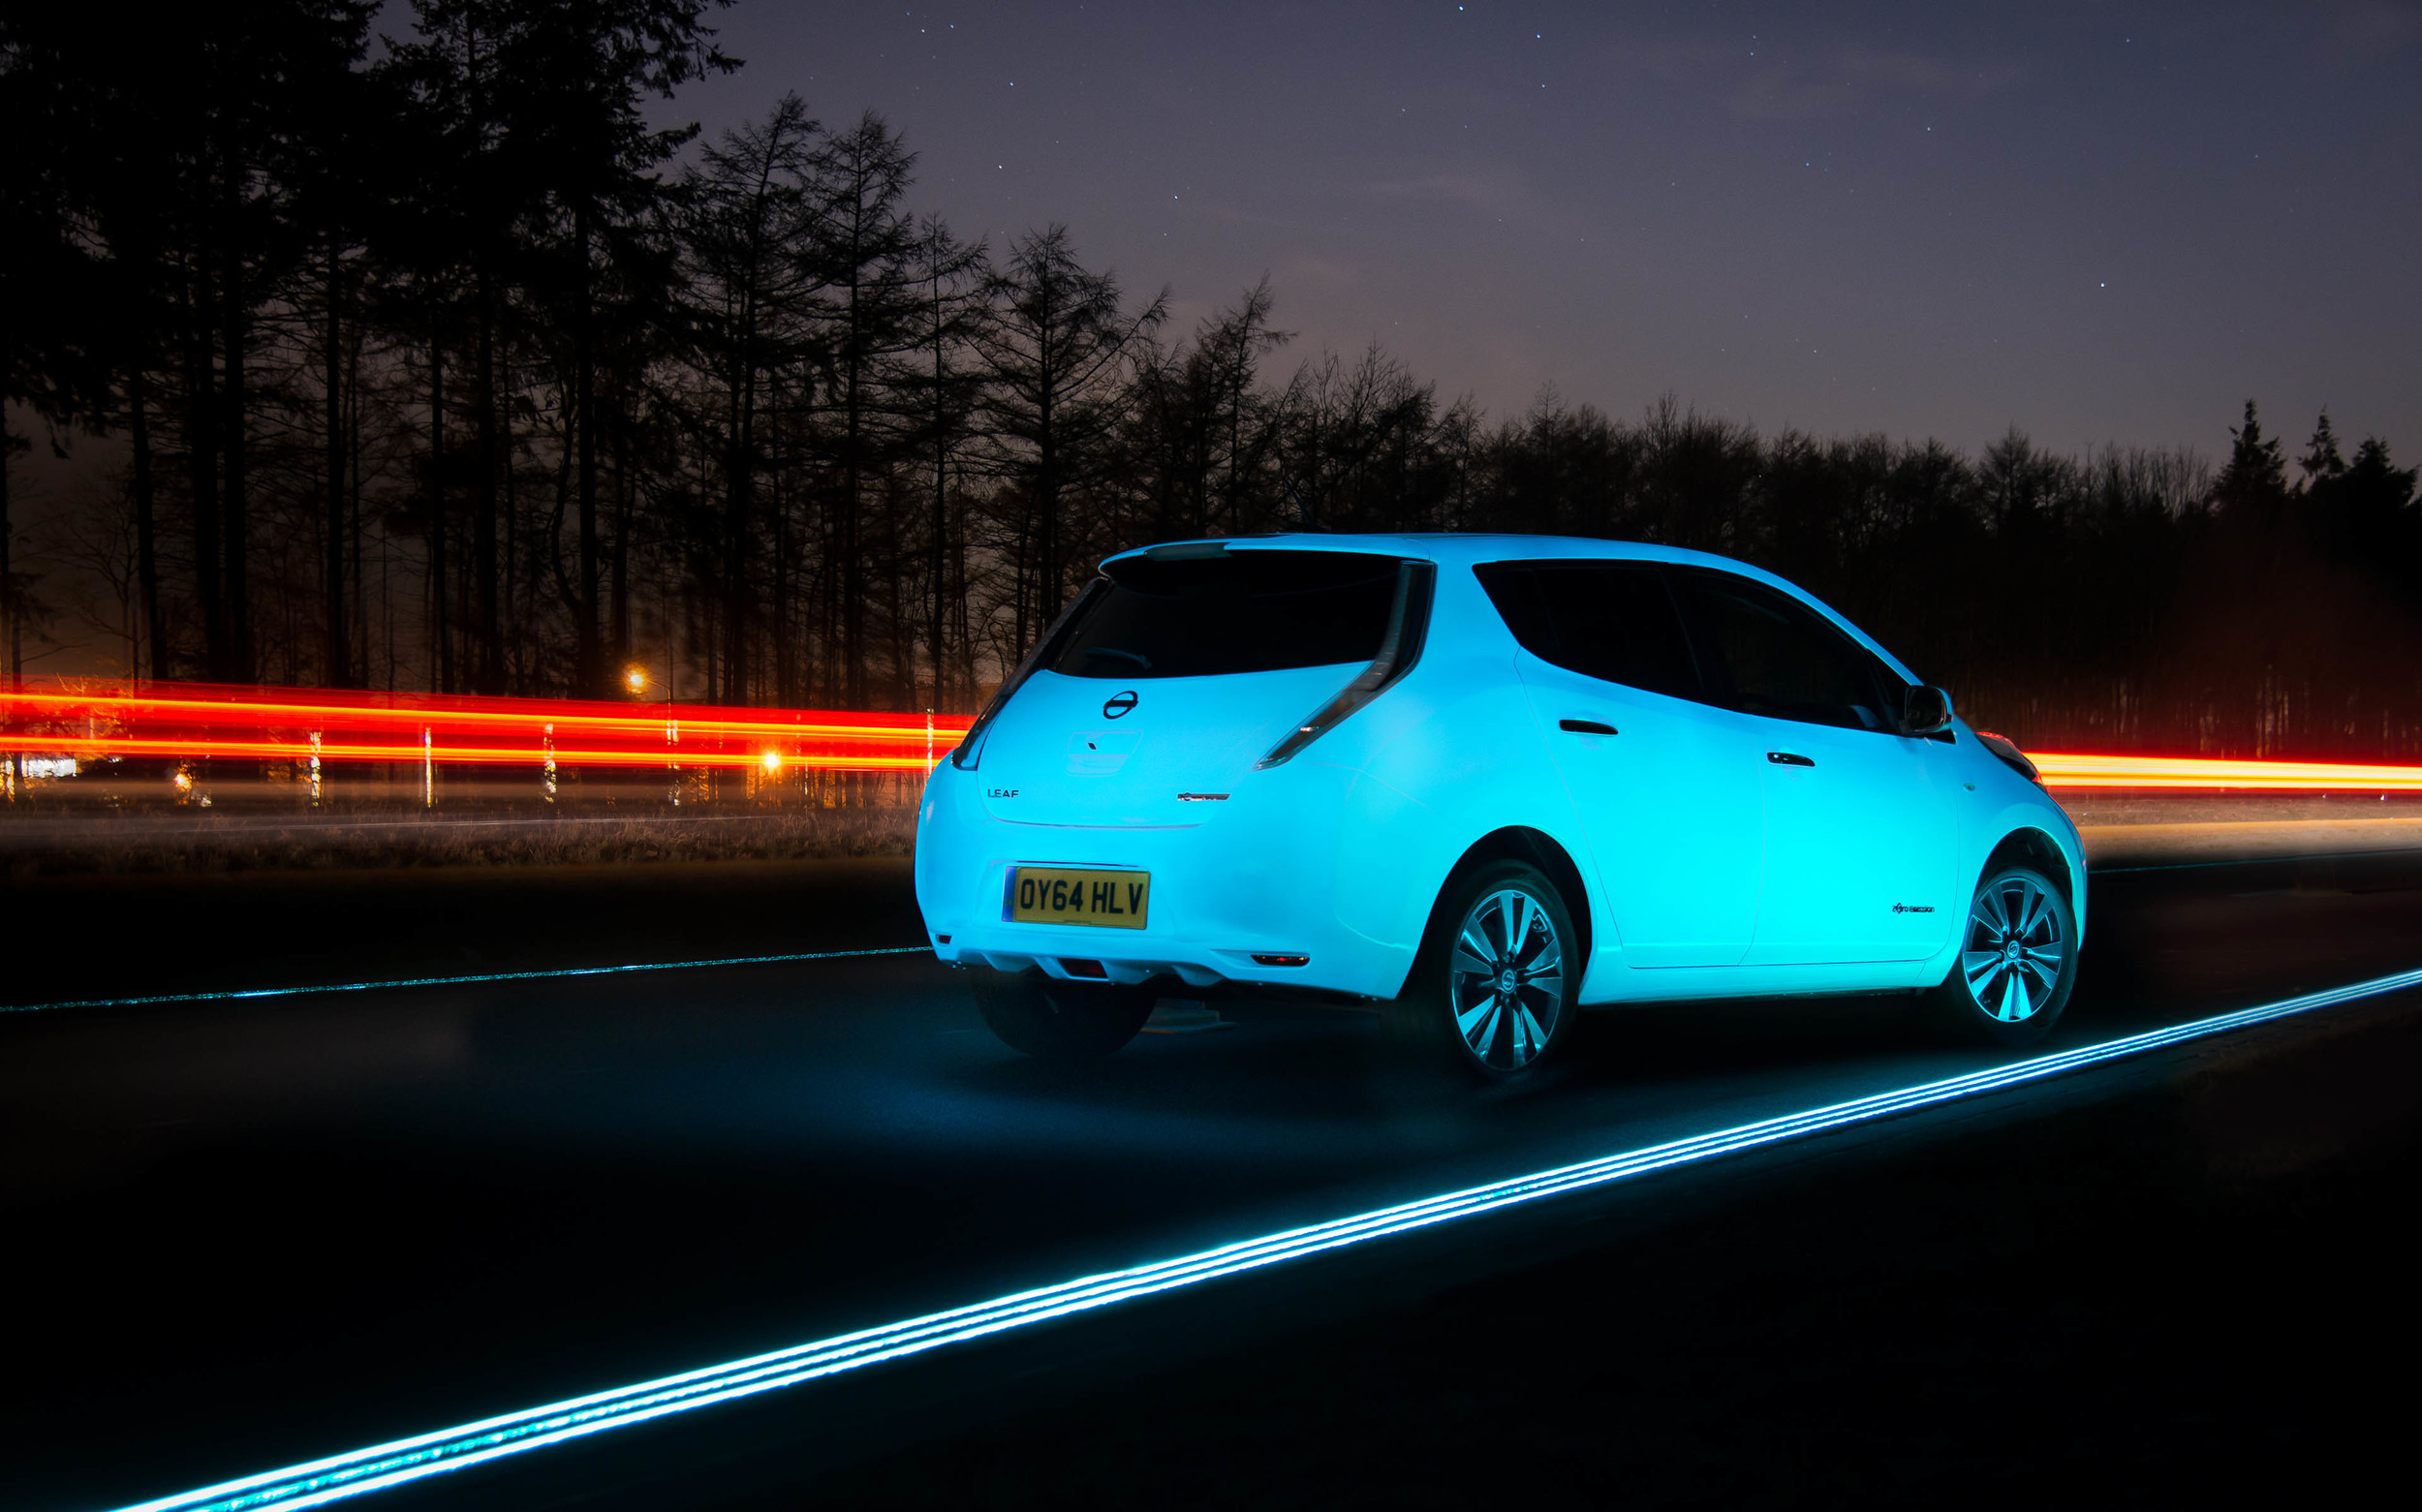 Best Automotive Battery >> Phosphorescent Nissan Leaf on Glowing Highway Looks Like a Scene From Avatar - autoevolution